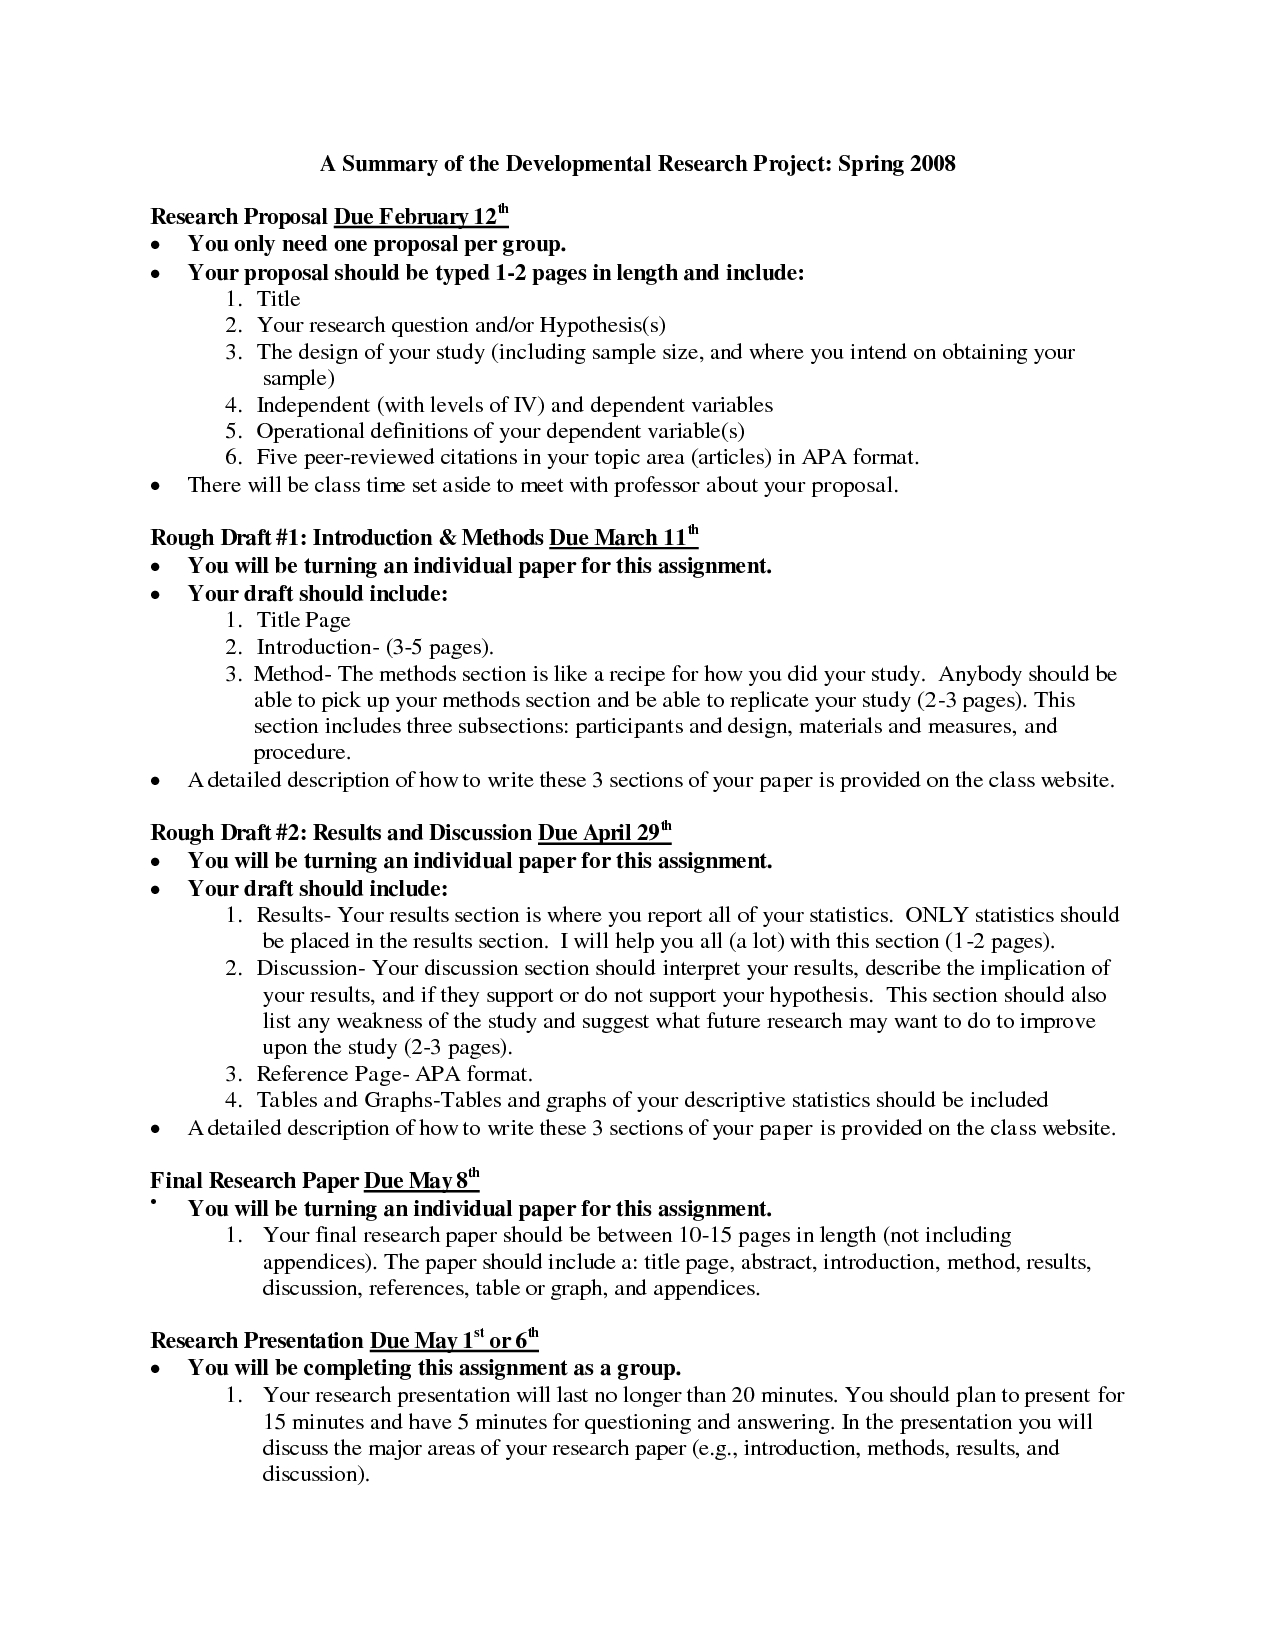 006 Psychology Undergraduate Resume Unique Sample Research Of Paper Topics To Write Beautiful On Good An Argumentative A Biology Economics Full